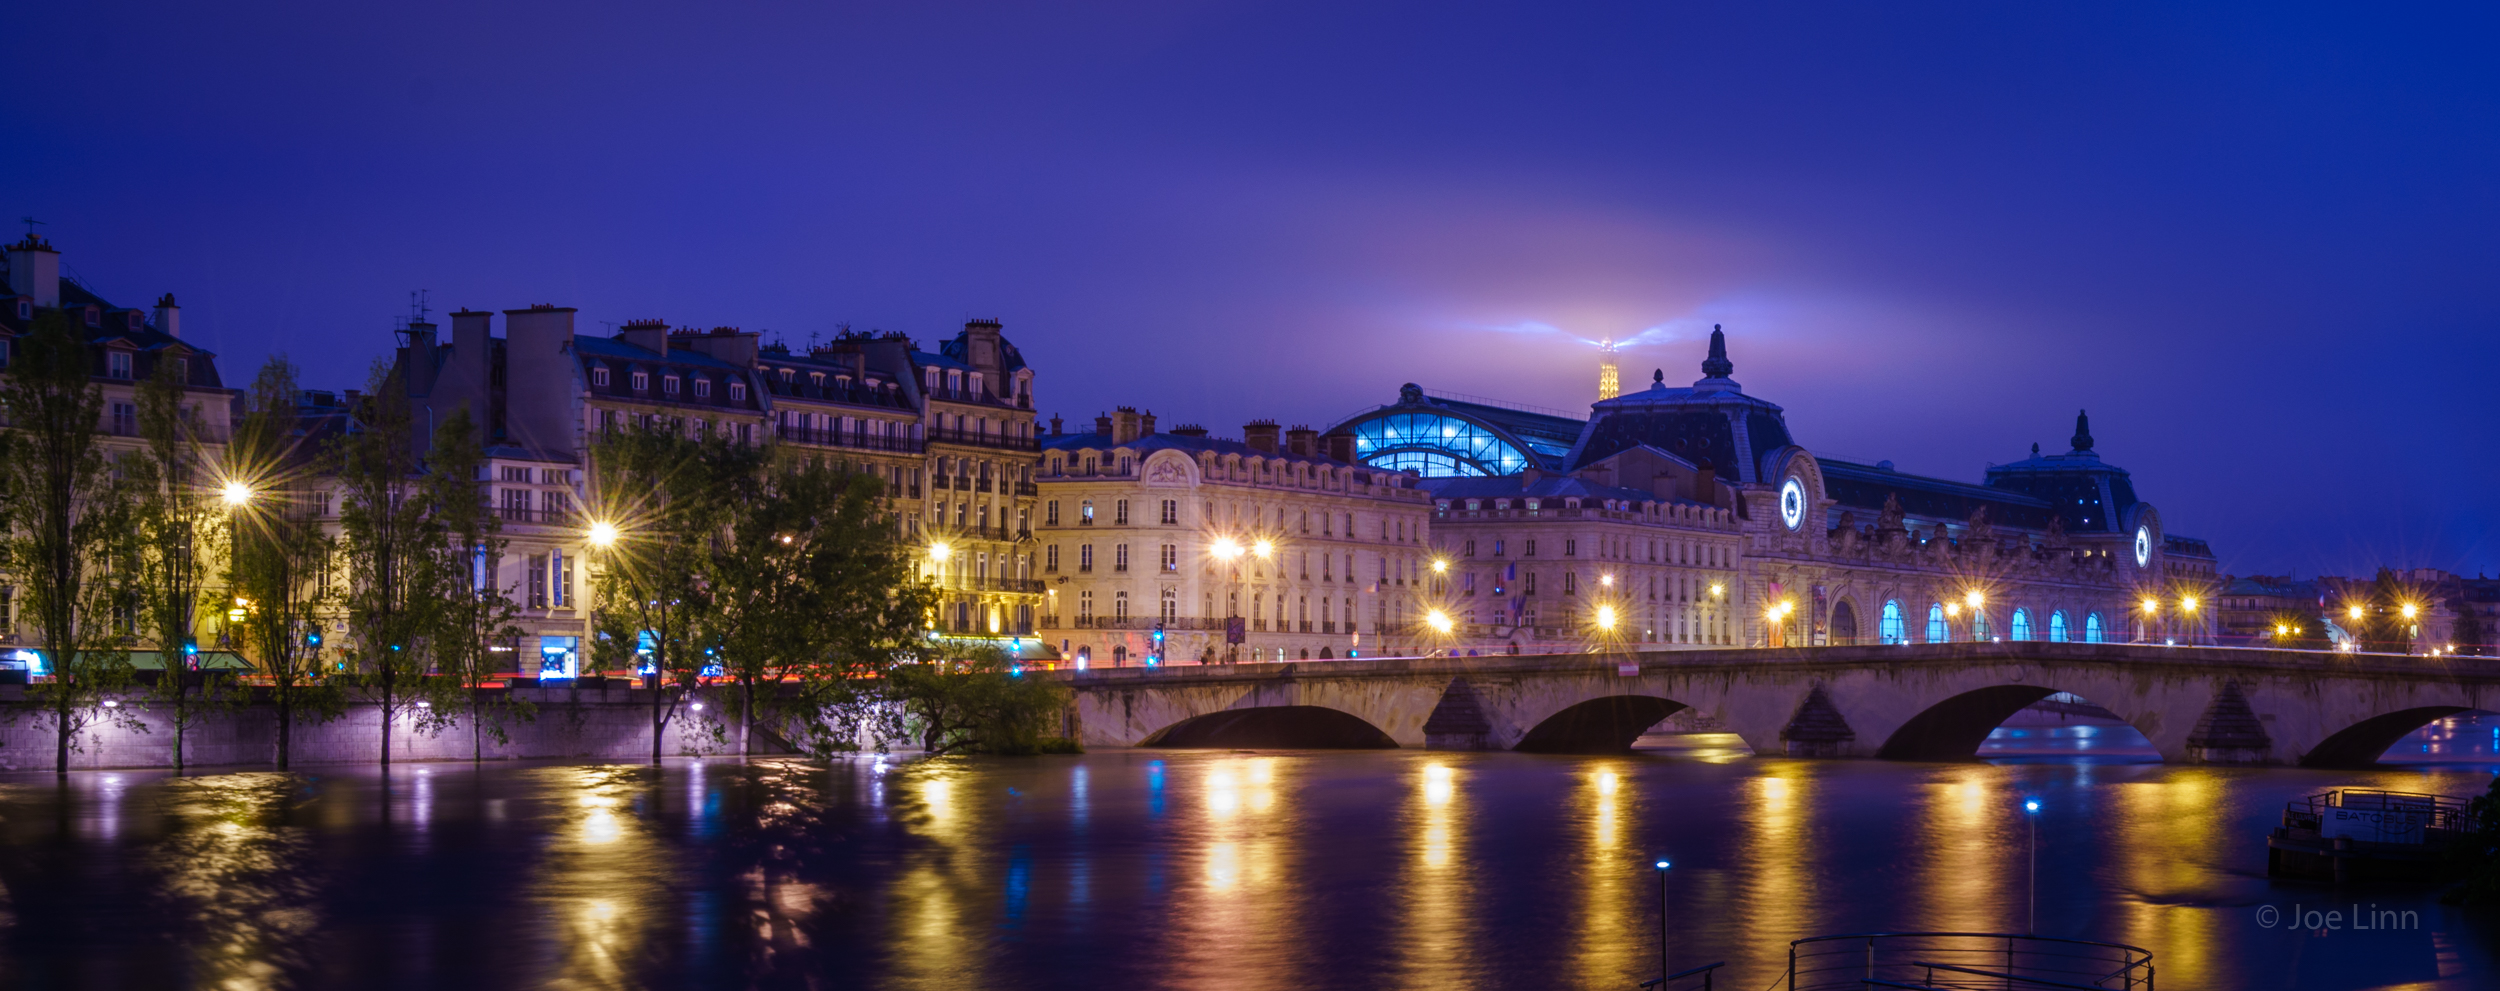 The Flooded Seine River